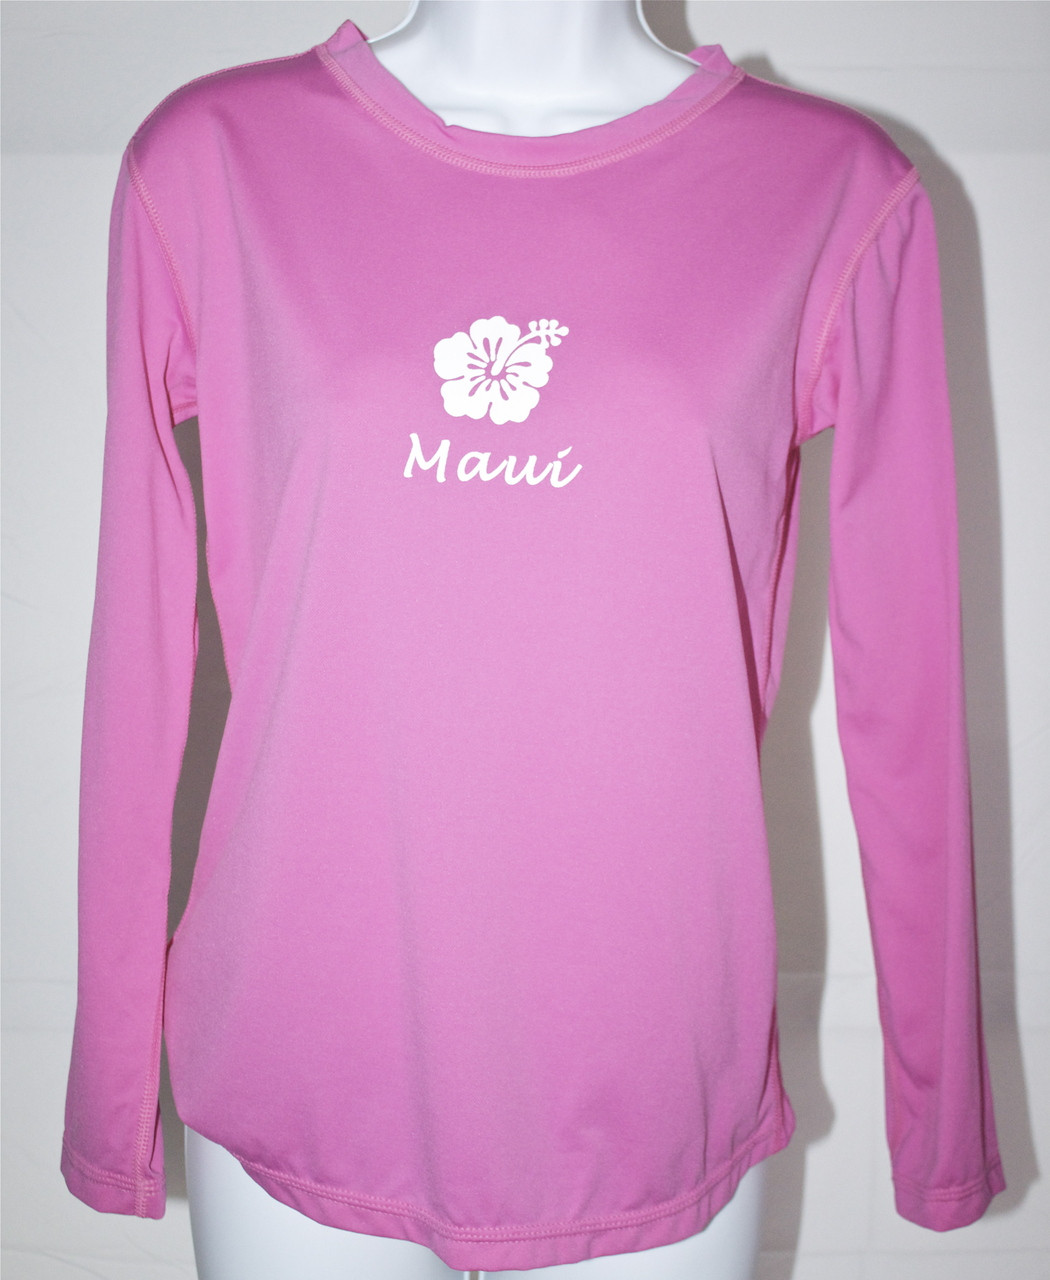 cb4a1c70e Women's Long Sleeve Light Pink Hibiscus UV Shirt - (808)661-7828 ...